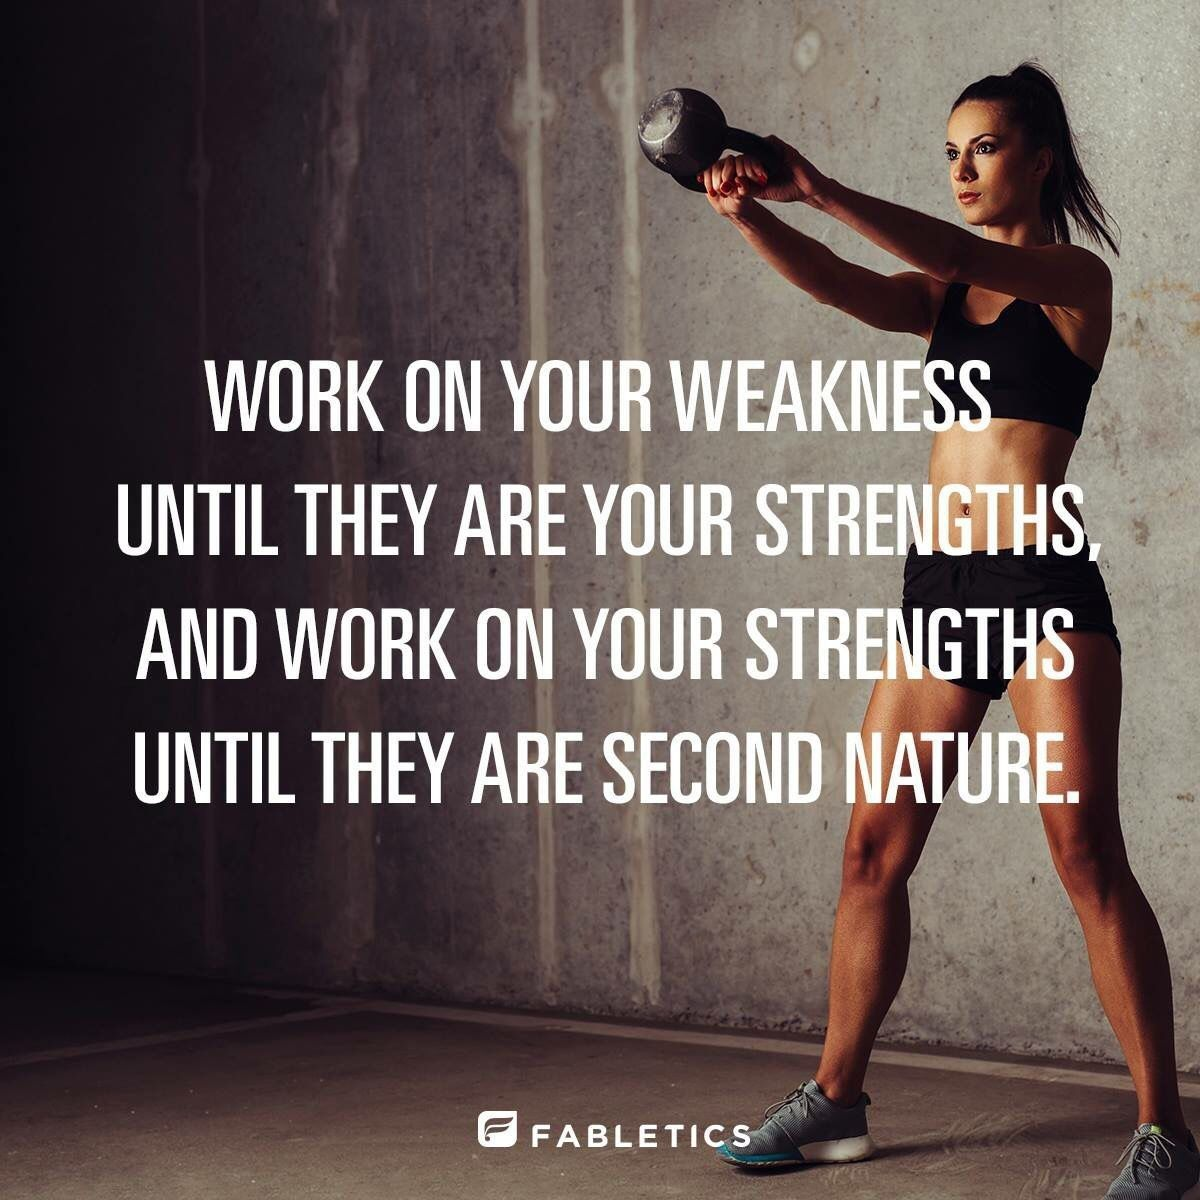 Bodybuilding Motivation Quotes inspiration For Fitness workout, abs back biceps triceps shoulders